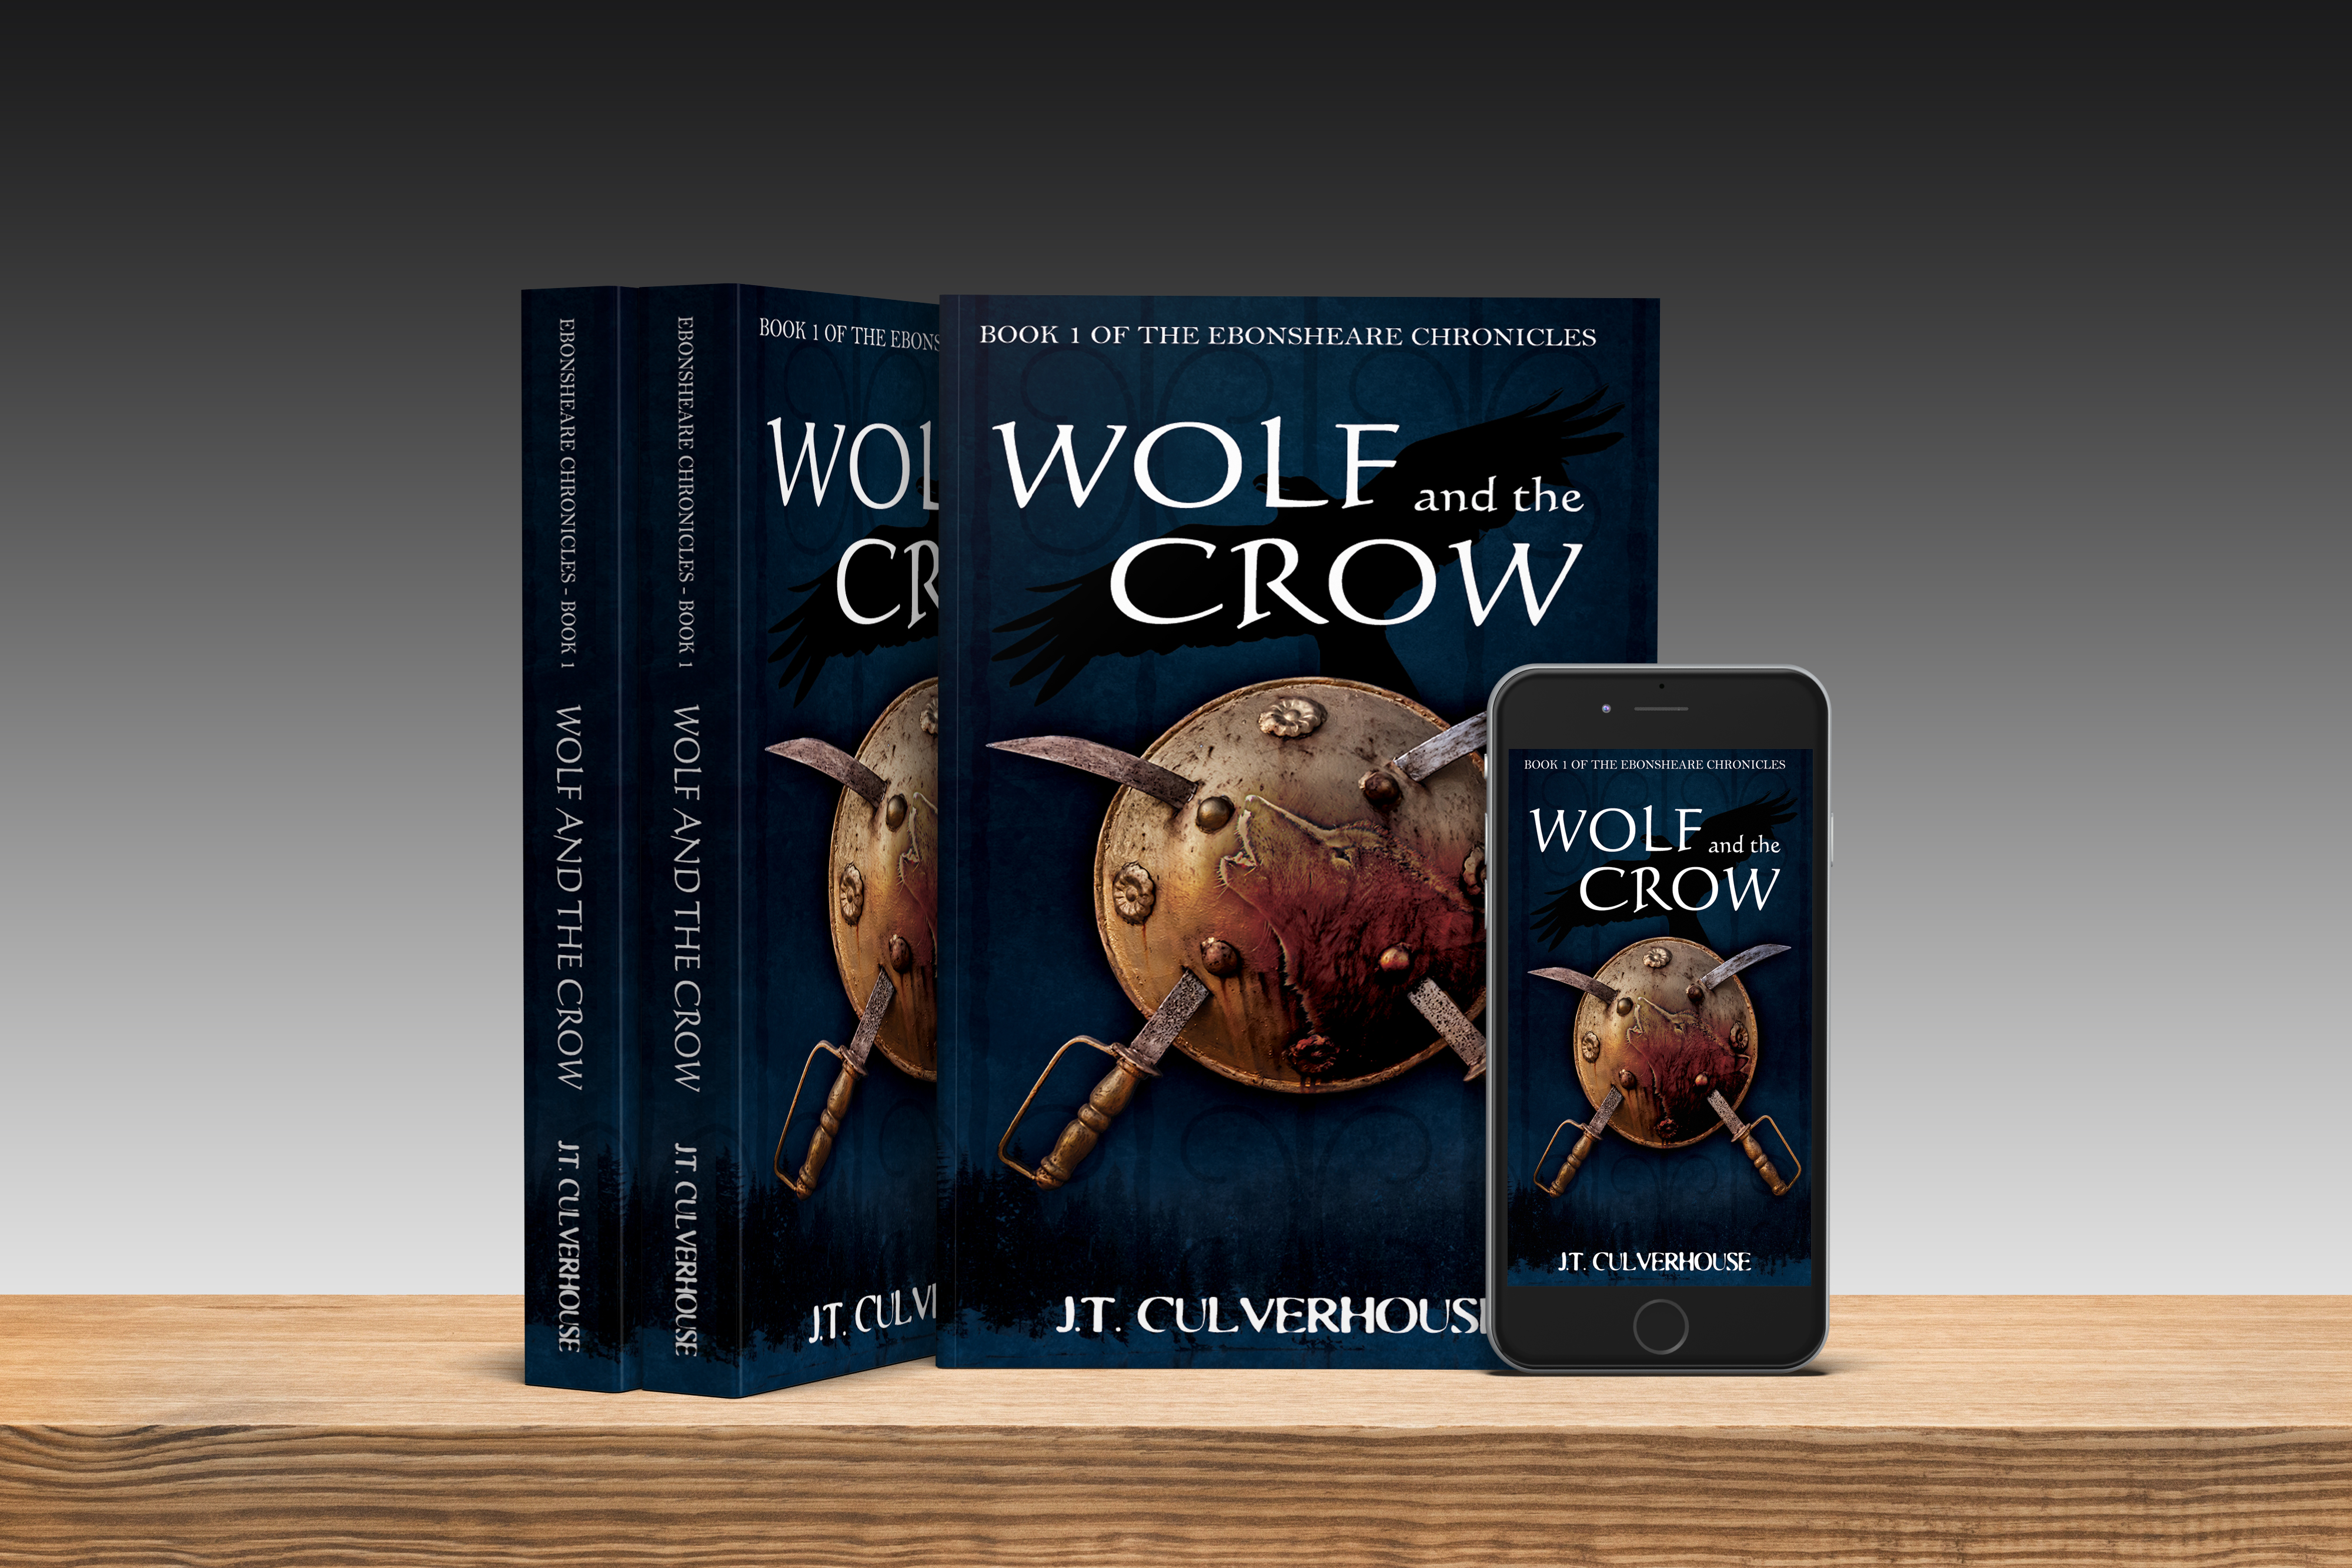 The first Physical Copy of Wolf and the Crow has arrived!